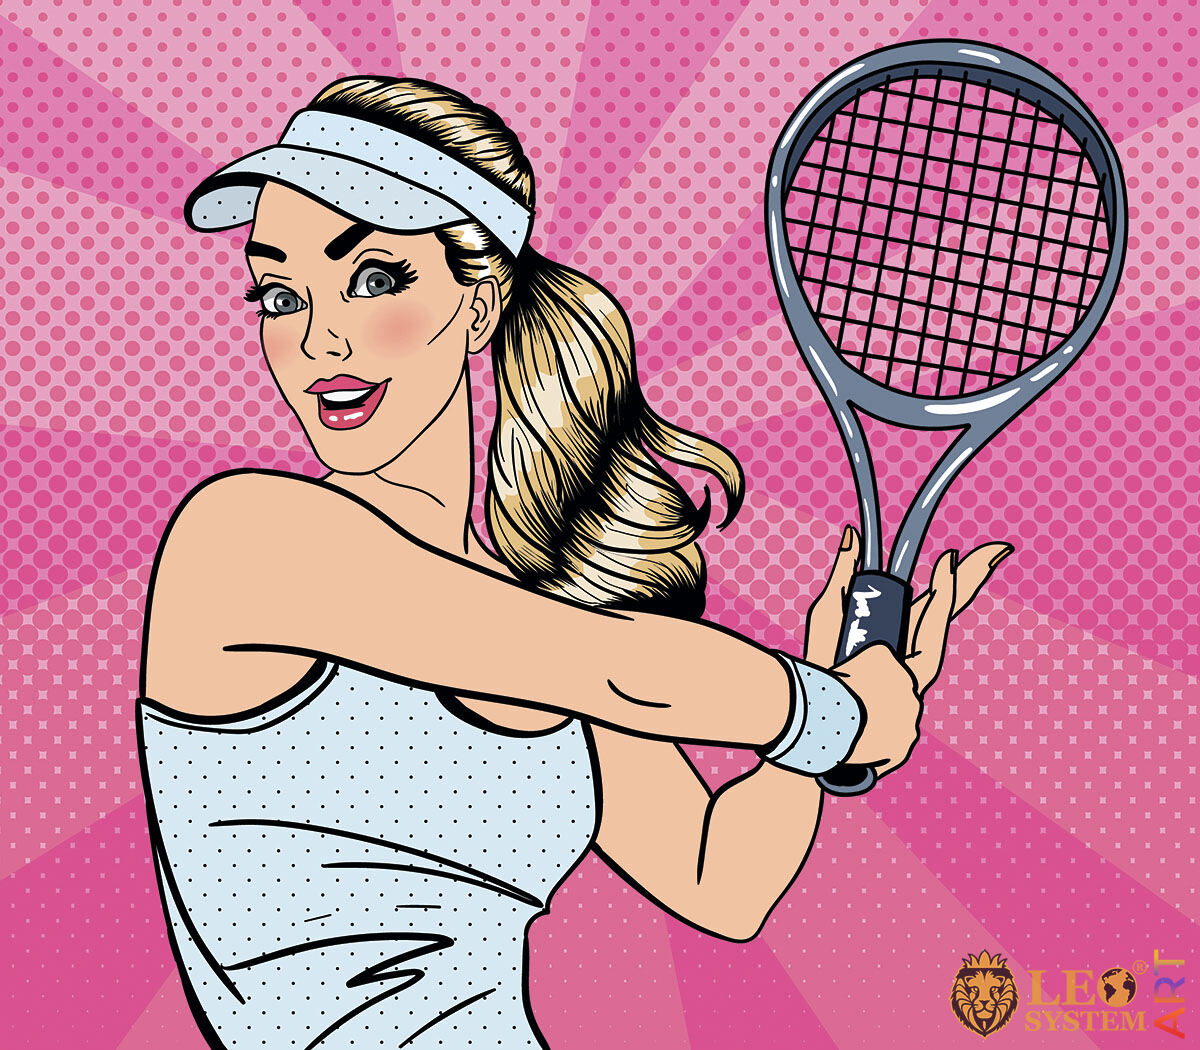 Picture of a pretty tennis player with a racket in her hands